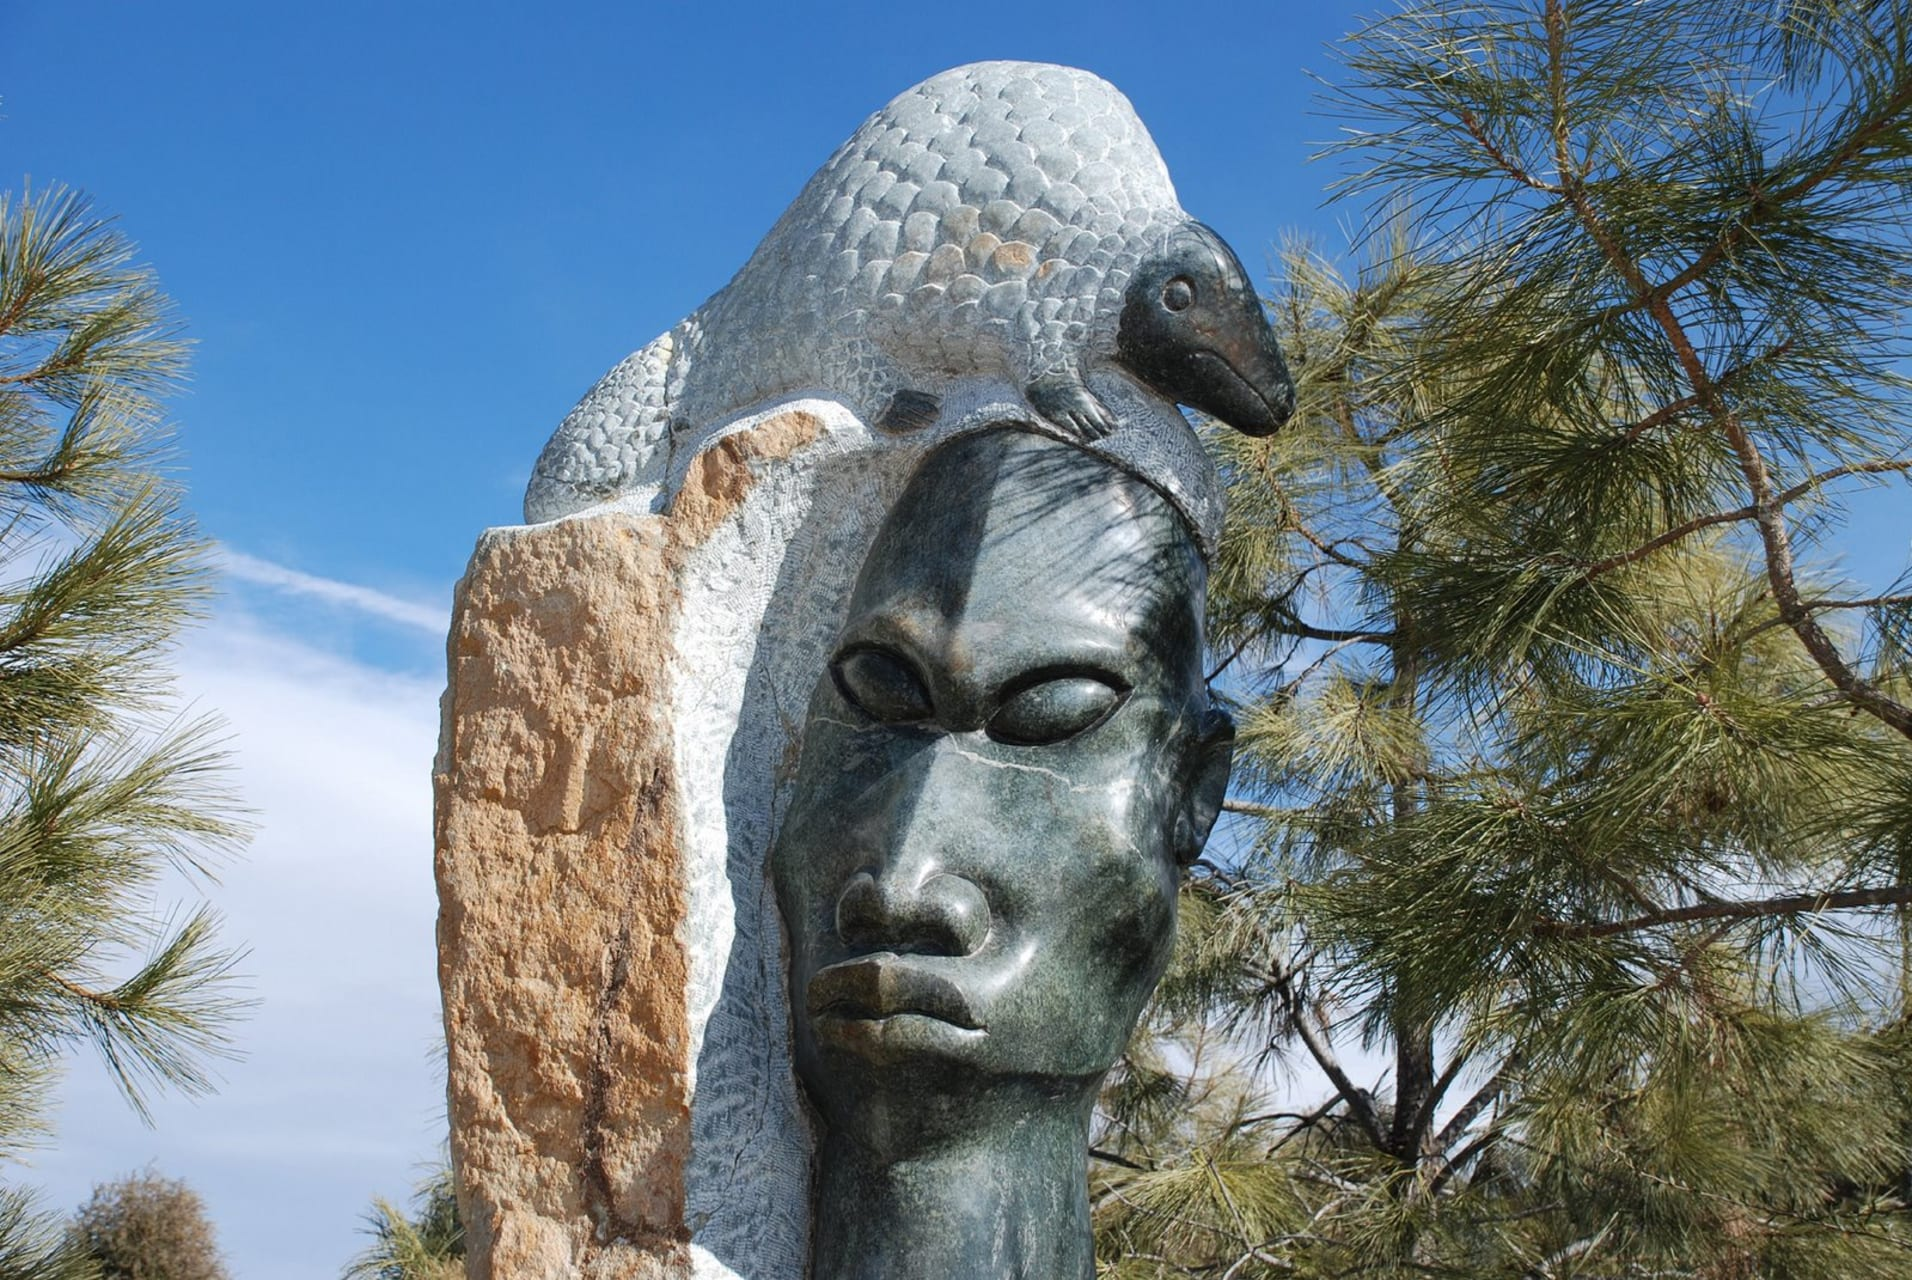 Harare - Exploring a peaceful Sculpture Park in the Capital